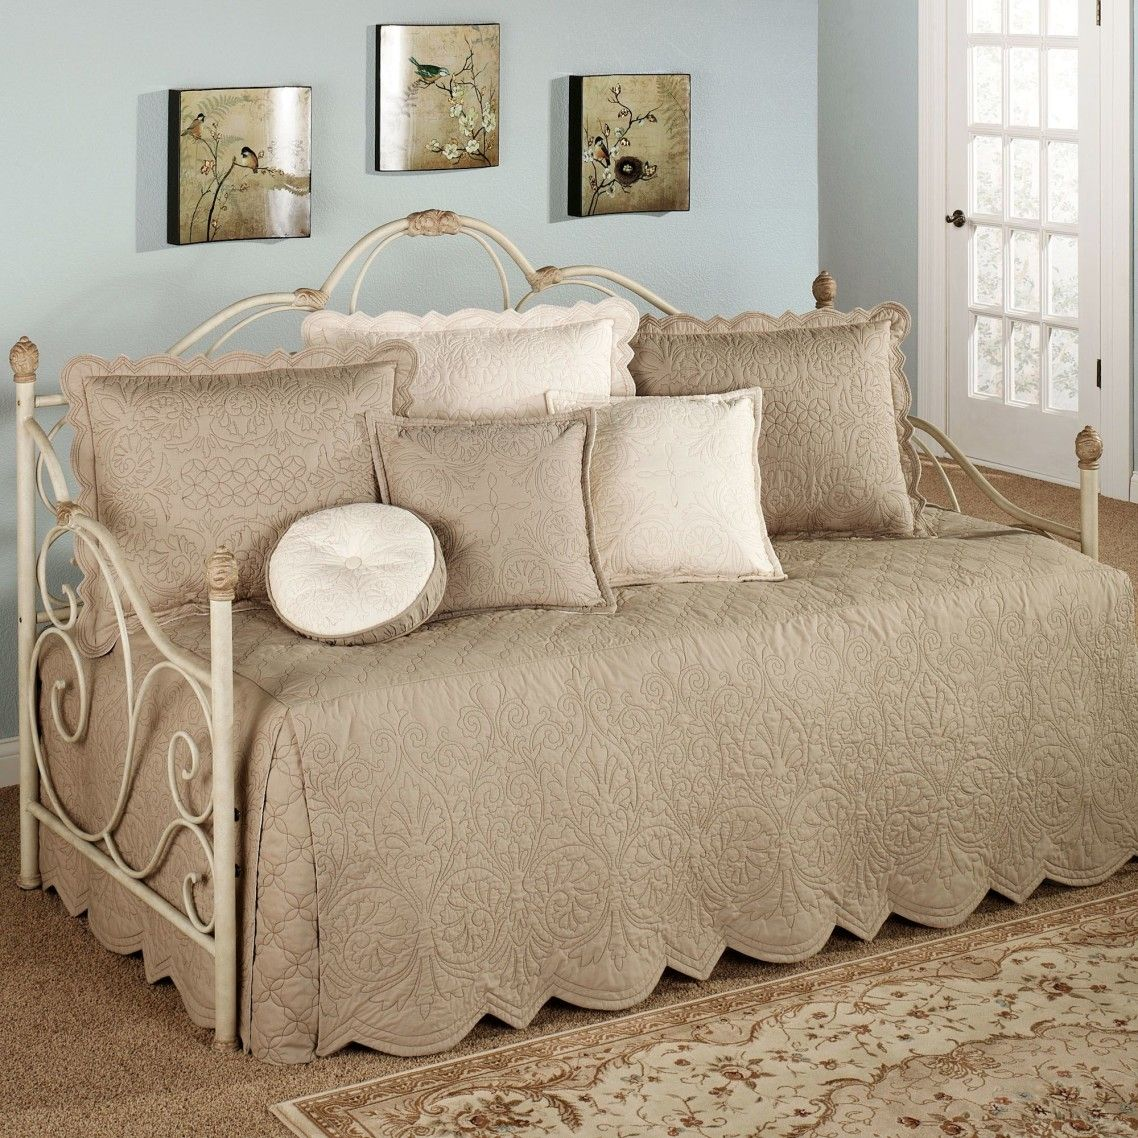 - Ornate Dark Grey Bed Sheets And Pillow Case Mixed Cream Cushions